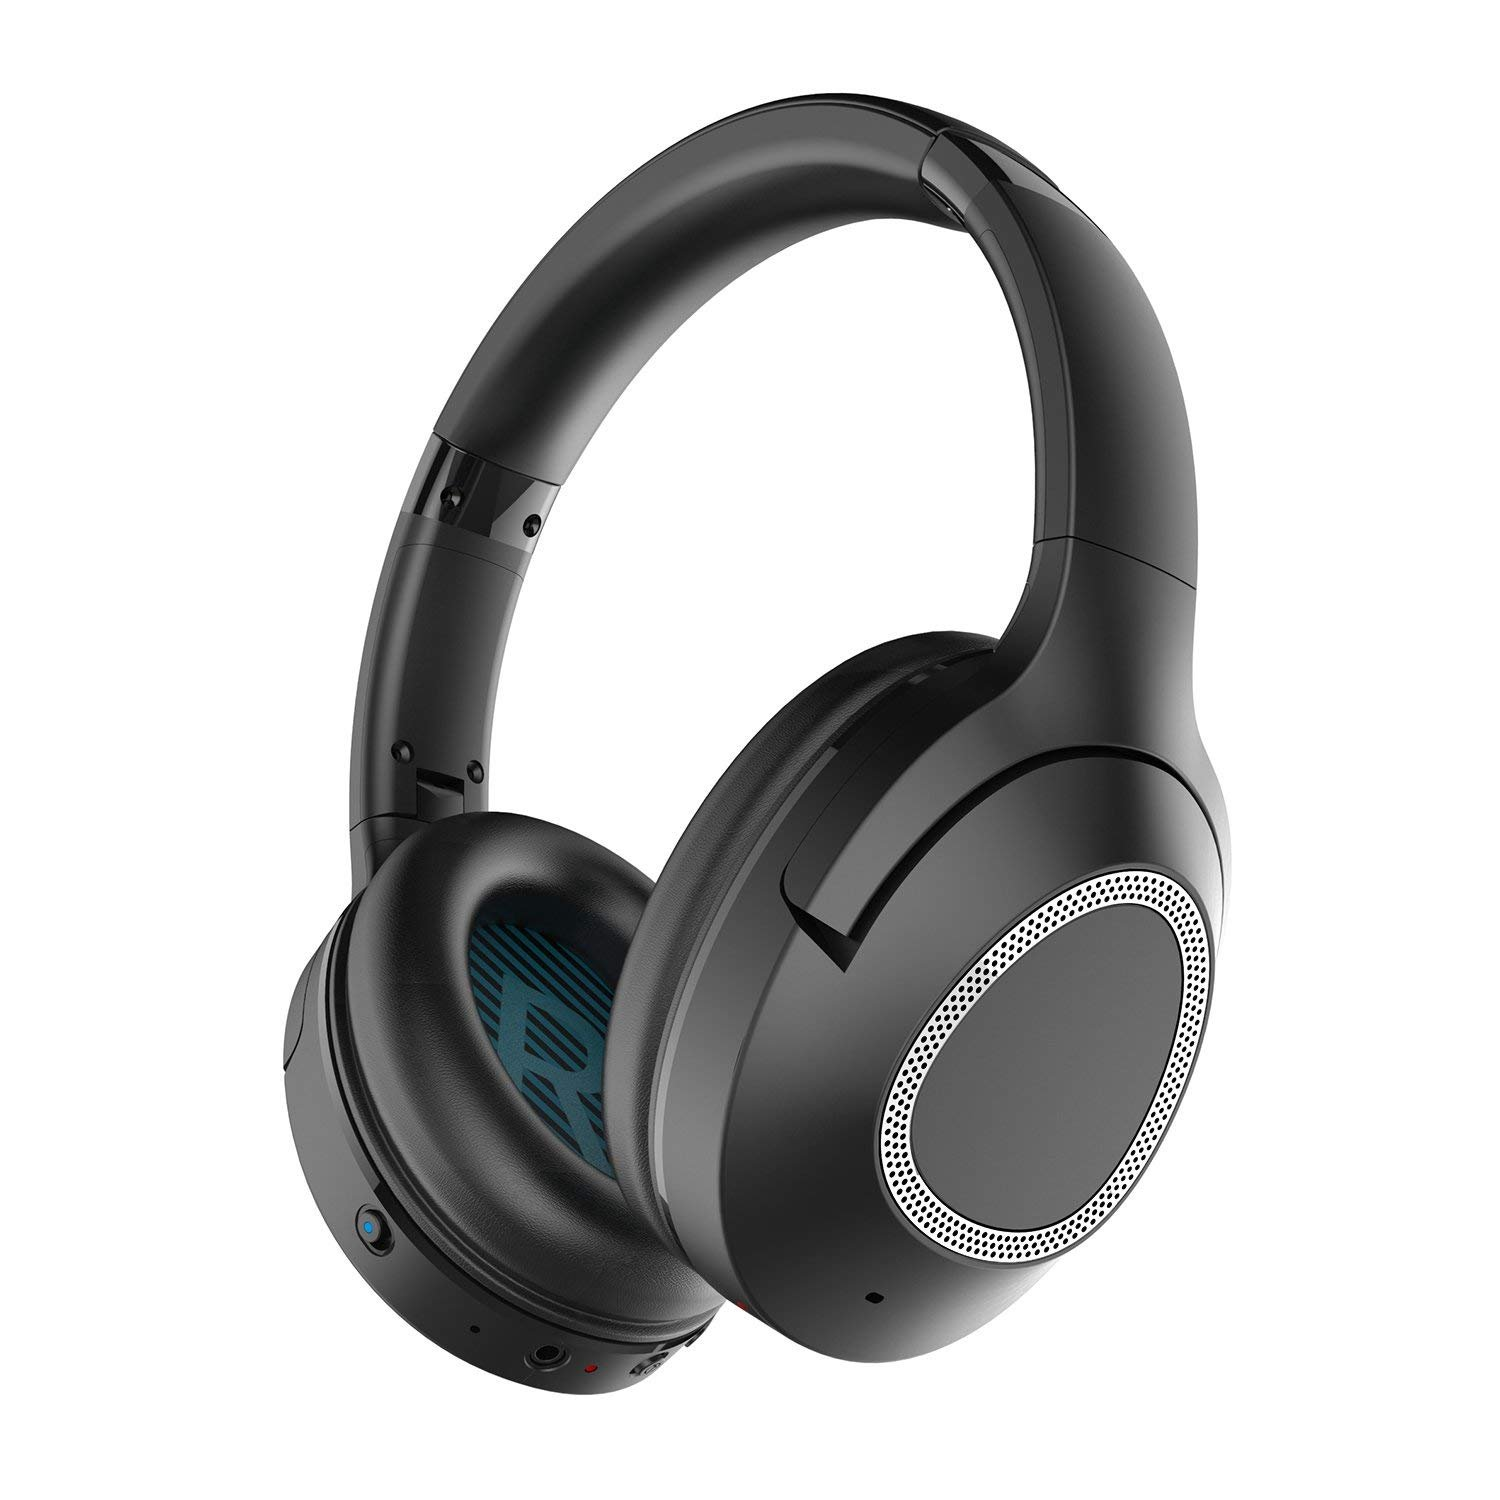 iDeaPLAY Active Noise Cancelling Headphones, Bluetooth 4.2 with apt-X, Wireless Over Ear Headphones with Microphones, 30 Hours Playback